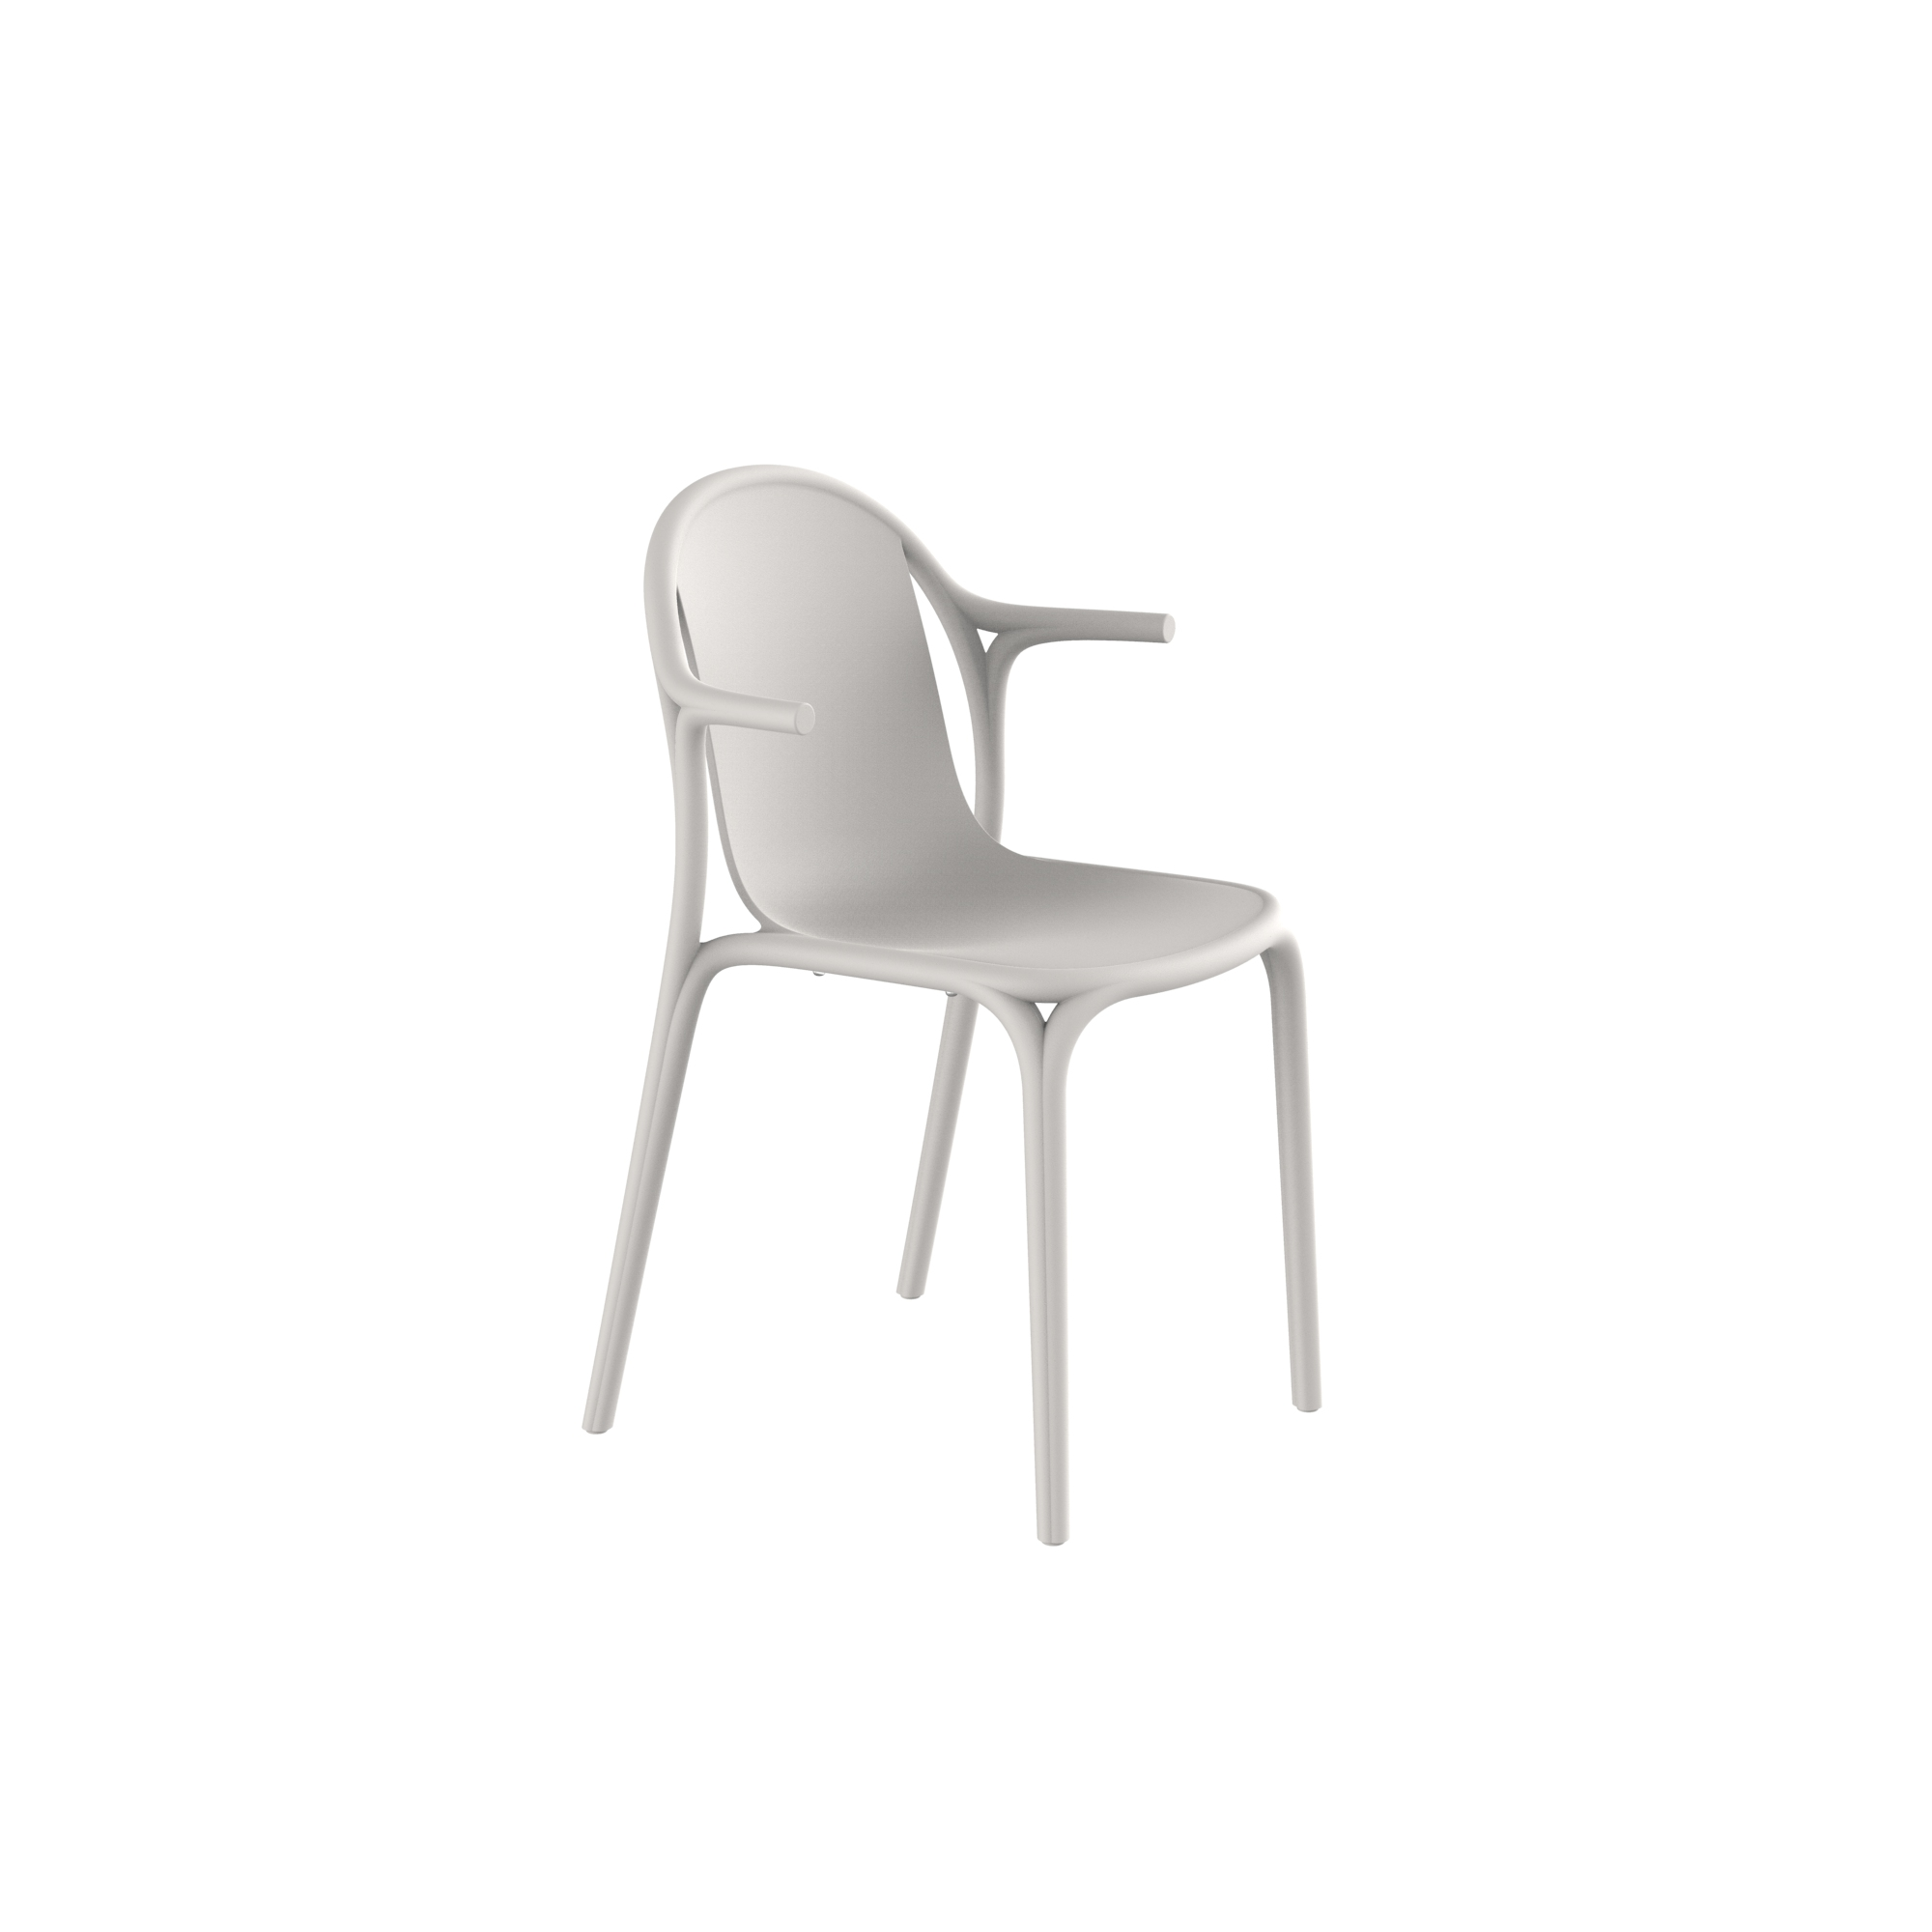 BROOKLYN CHAIR with armrests